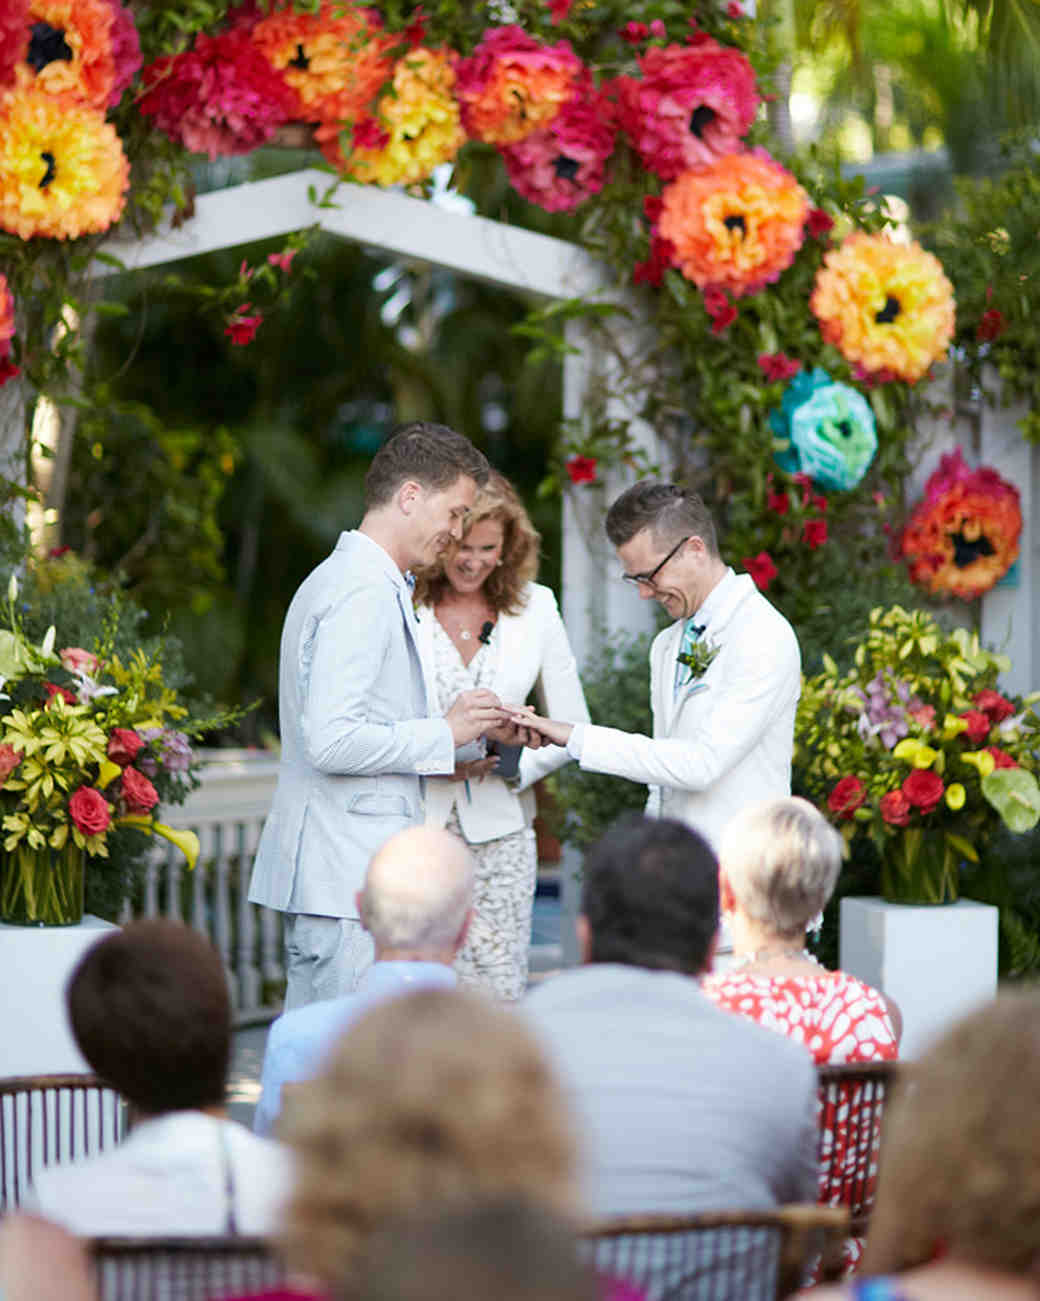 gay wedding decorations your same wedding etiquette questions answered 4459